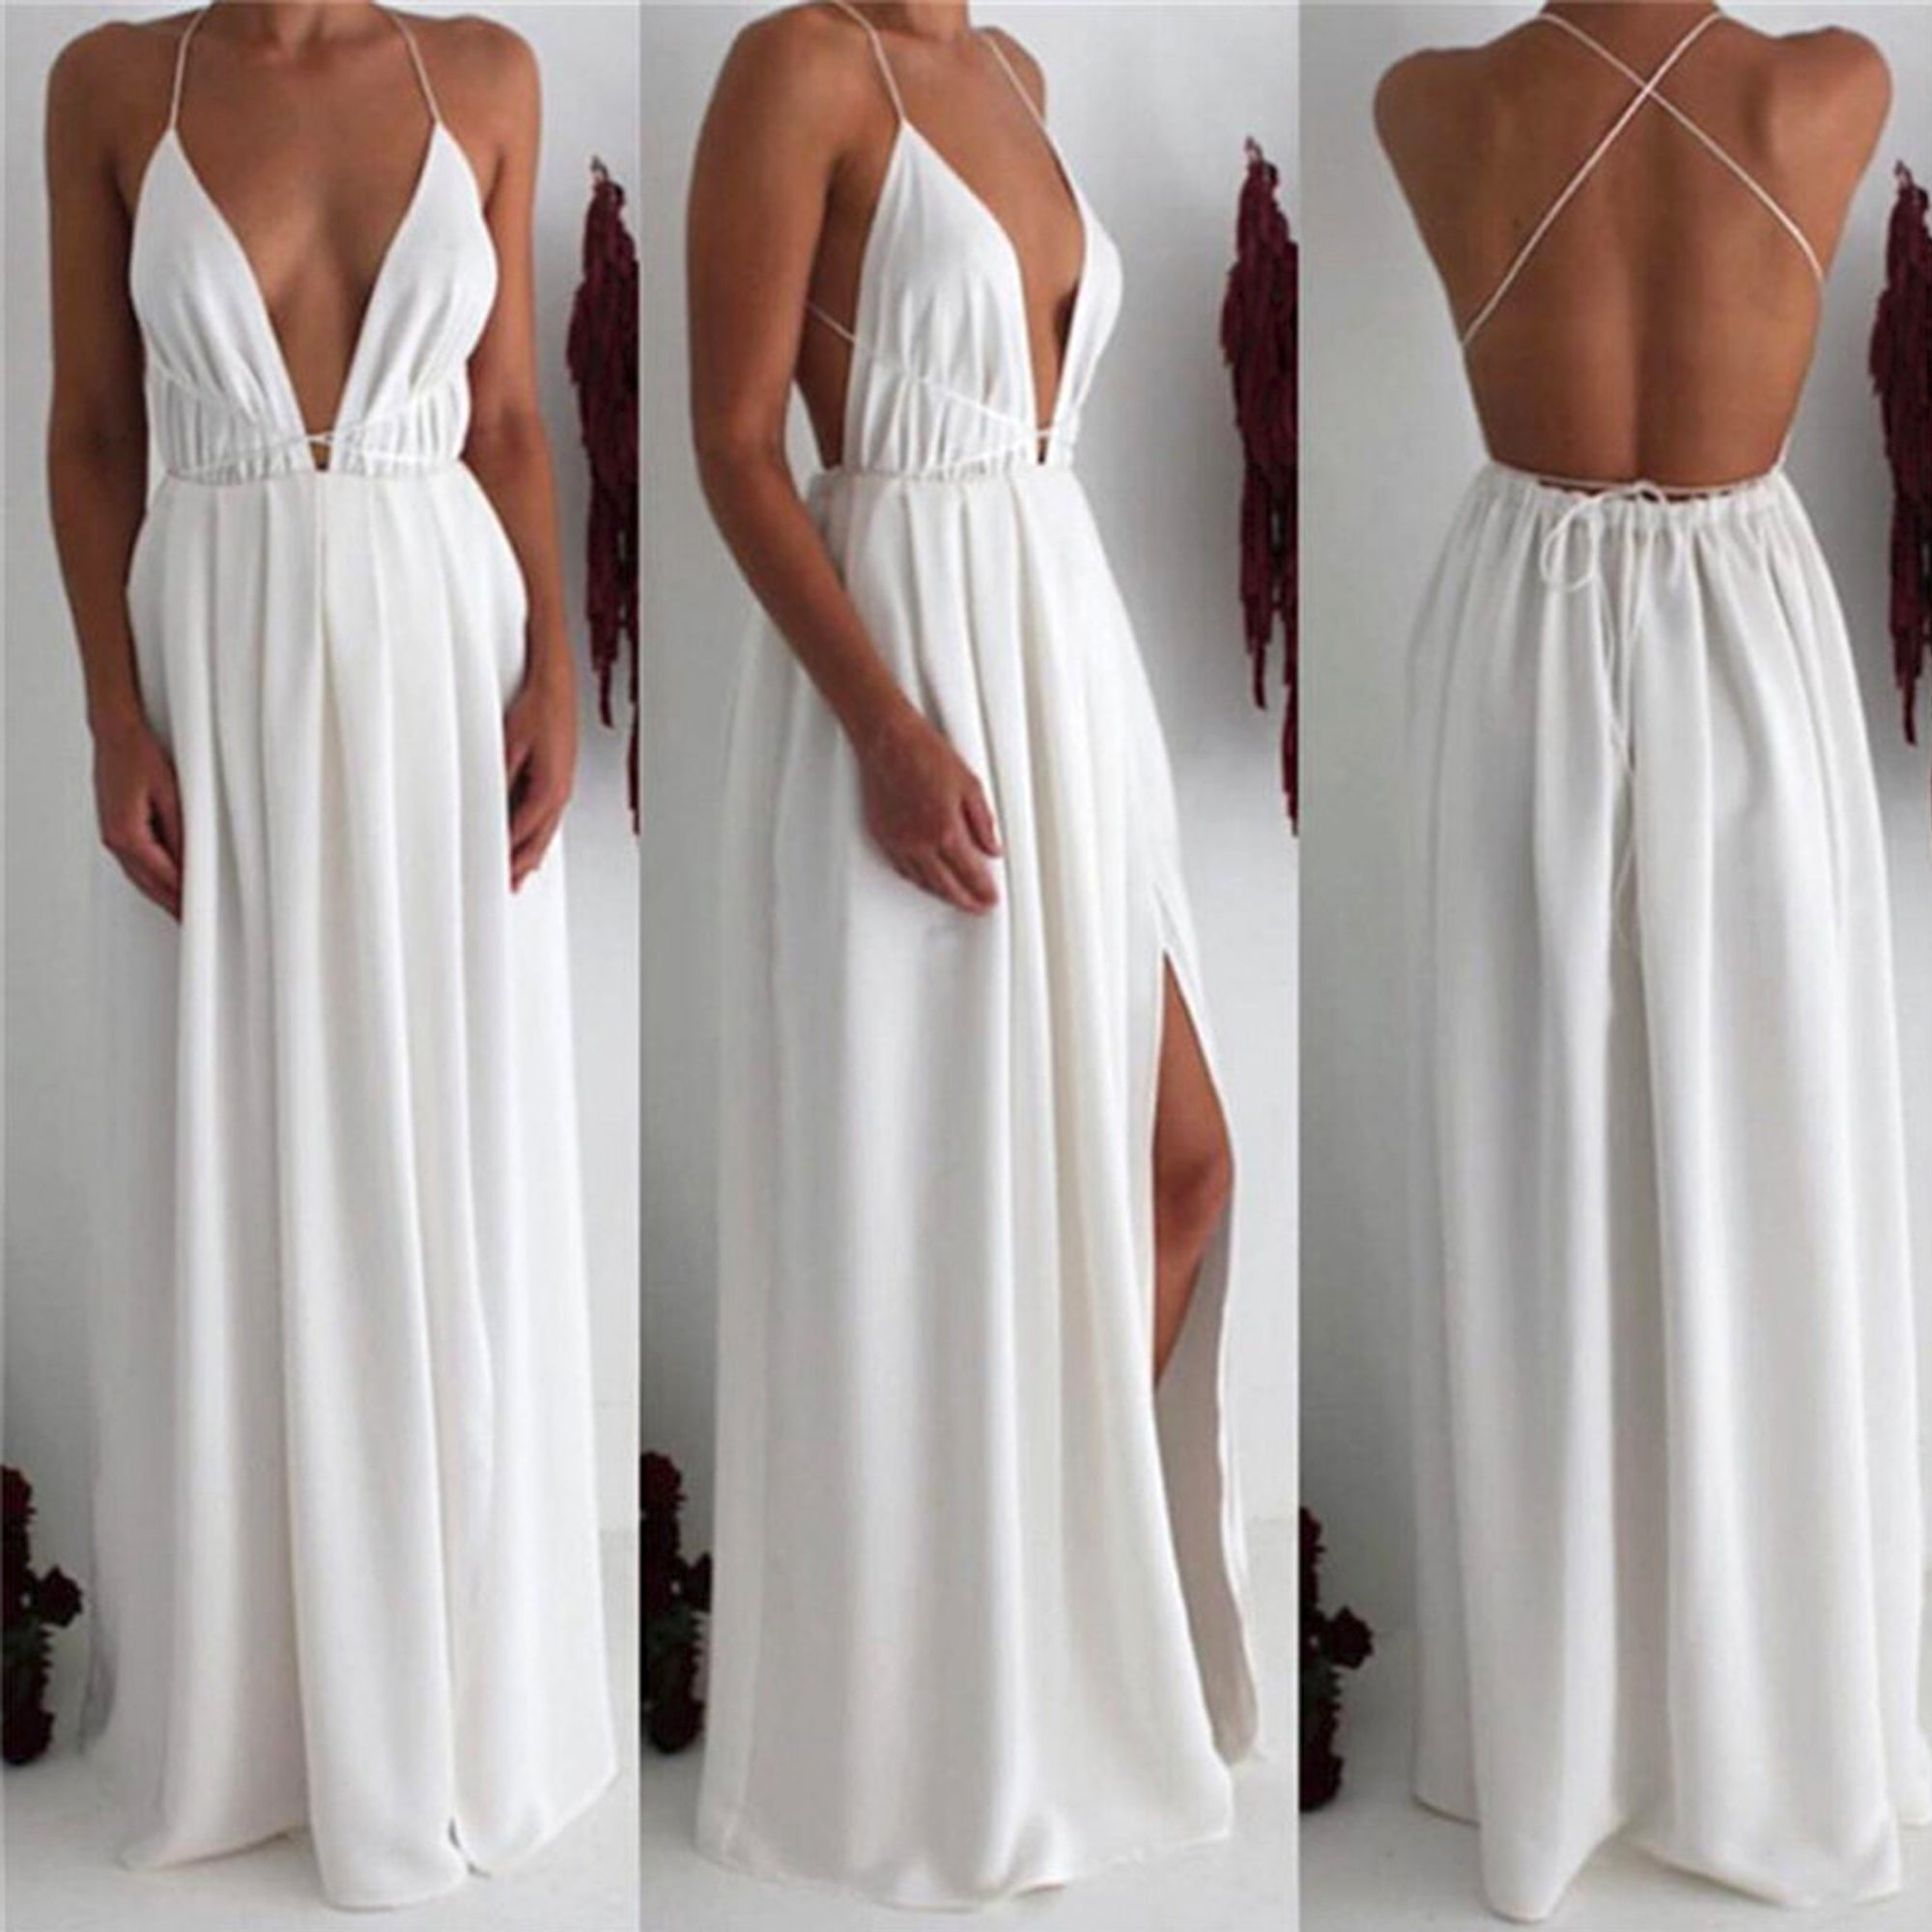 51663d8d77d8 ... Elegant Formal Long Prom Dresses Outfit Ideas for Teens - Simple Modest  Backless White Strappy Chiffon ...